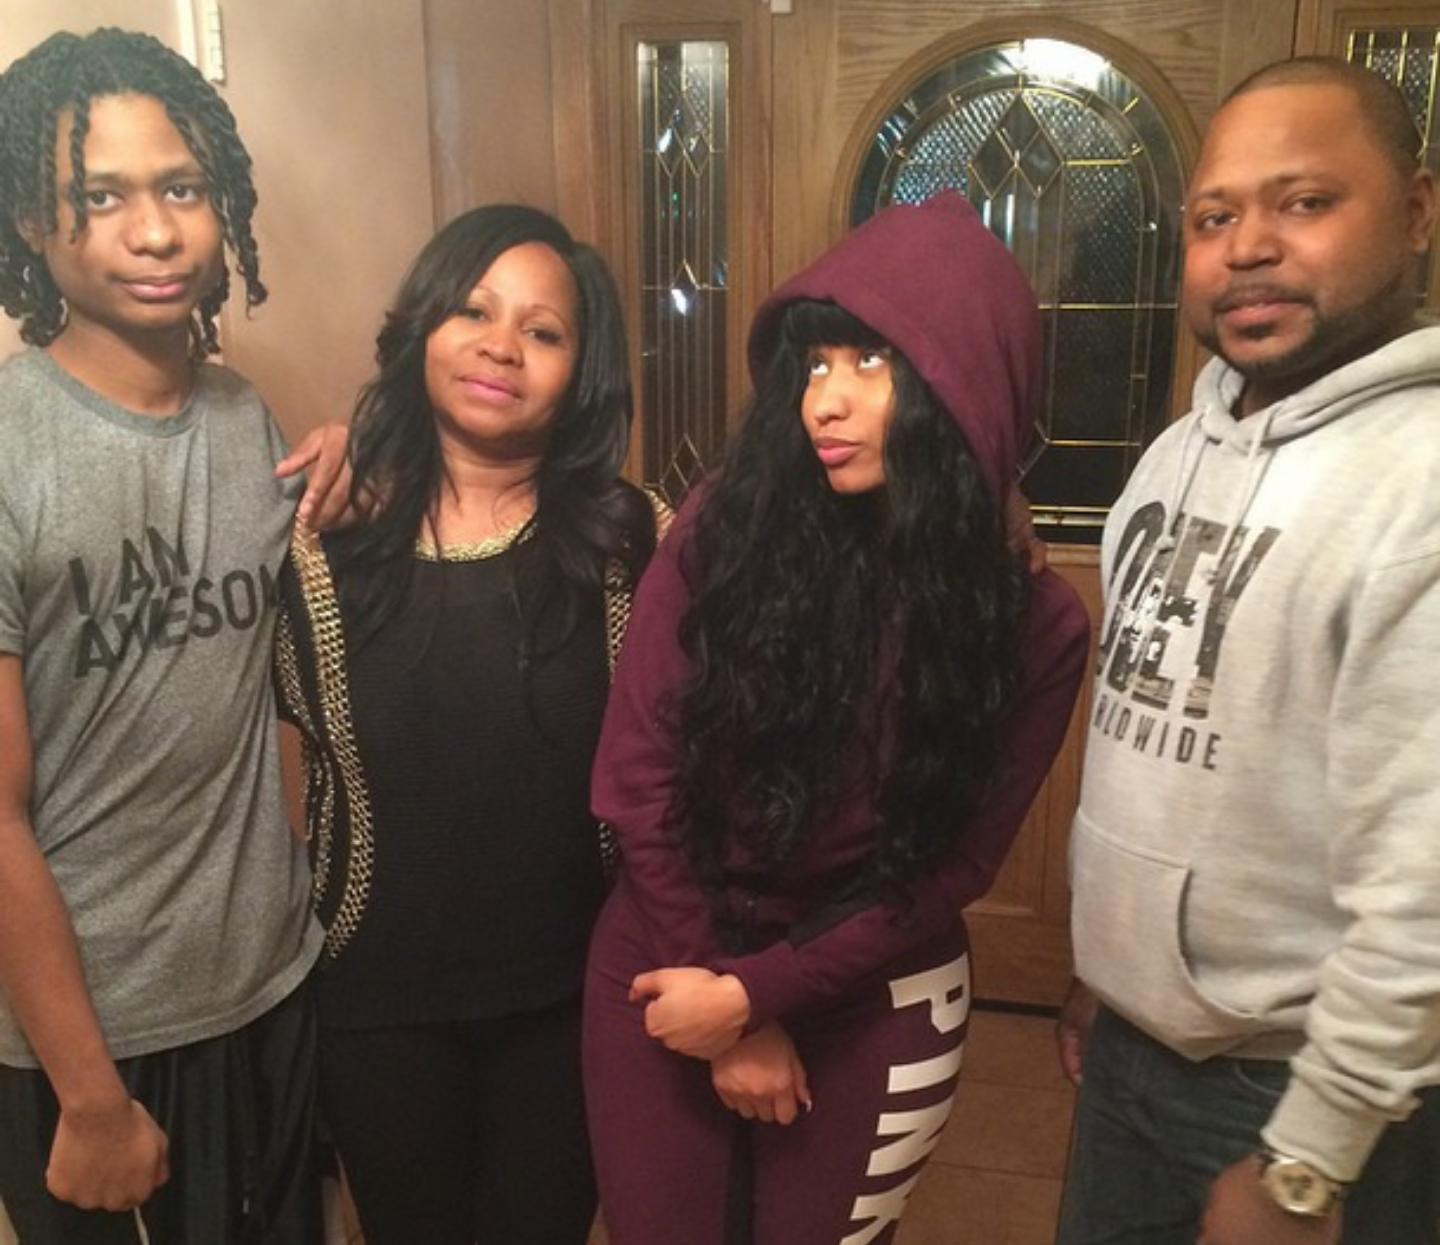 Nicki Minaj S Brother Jelani Maraj Arrested For The Rape